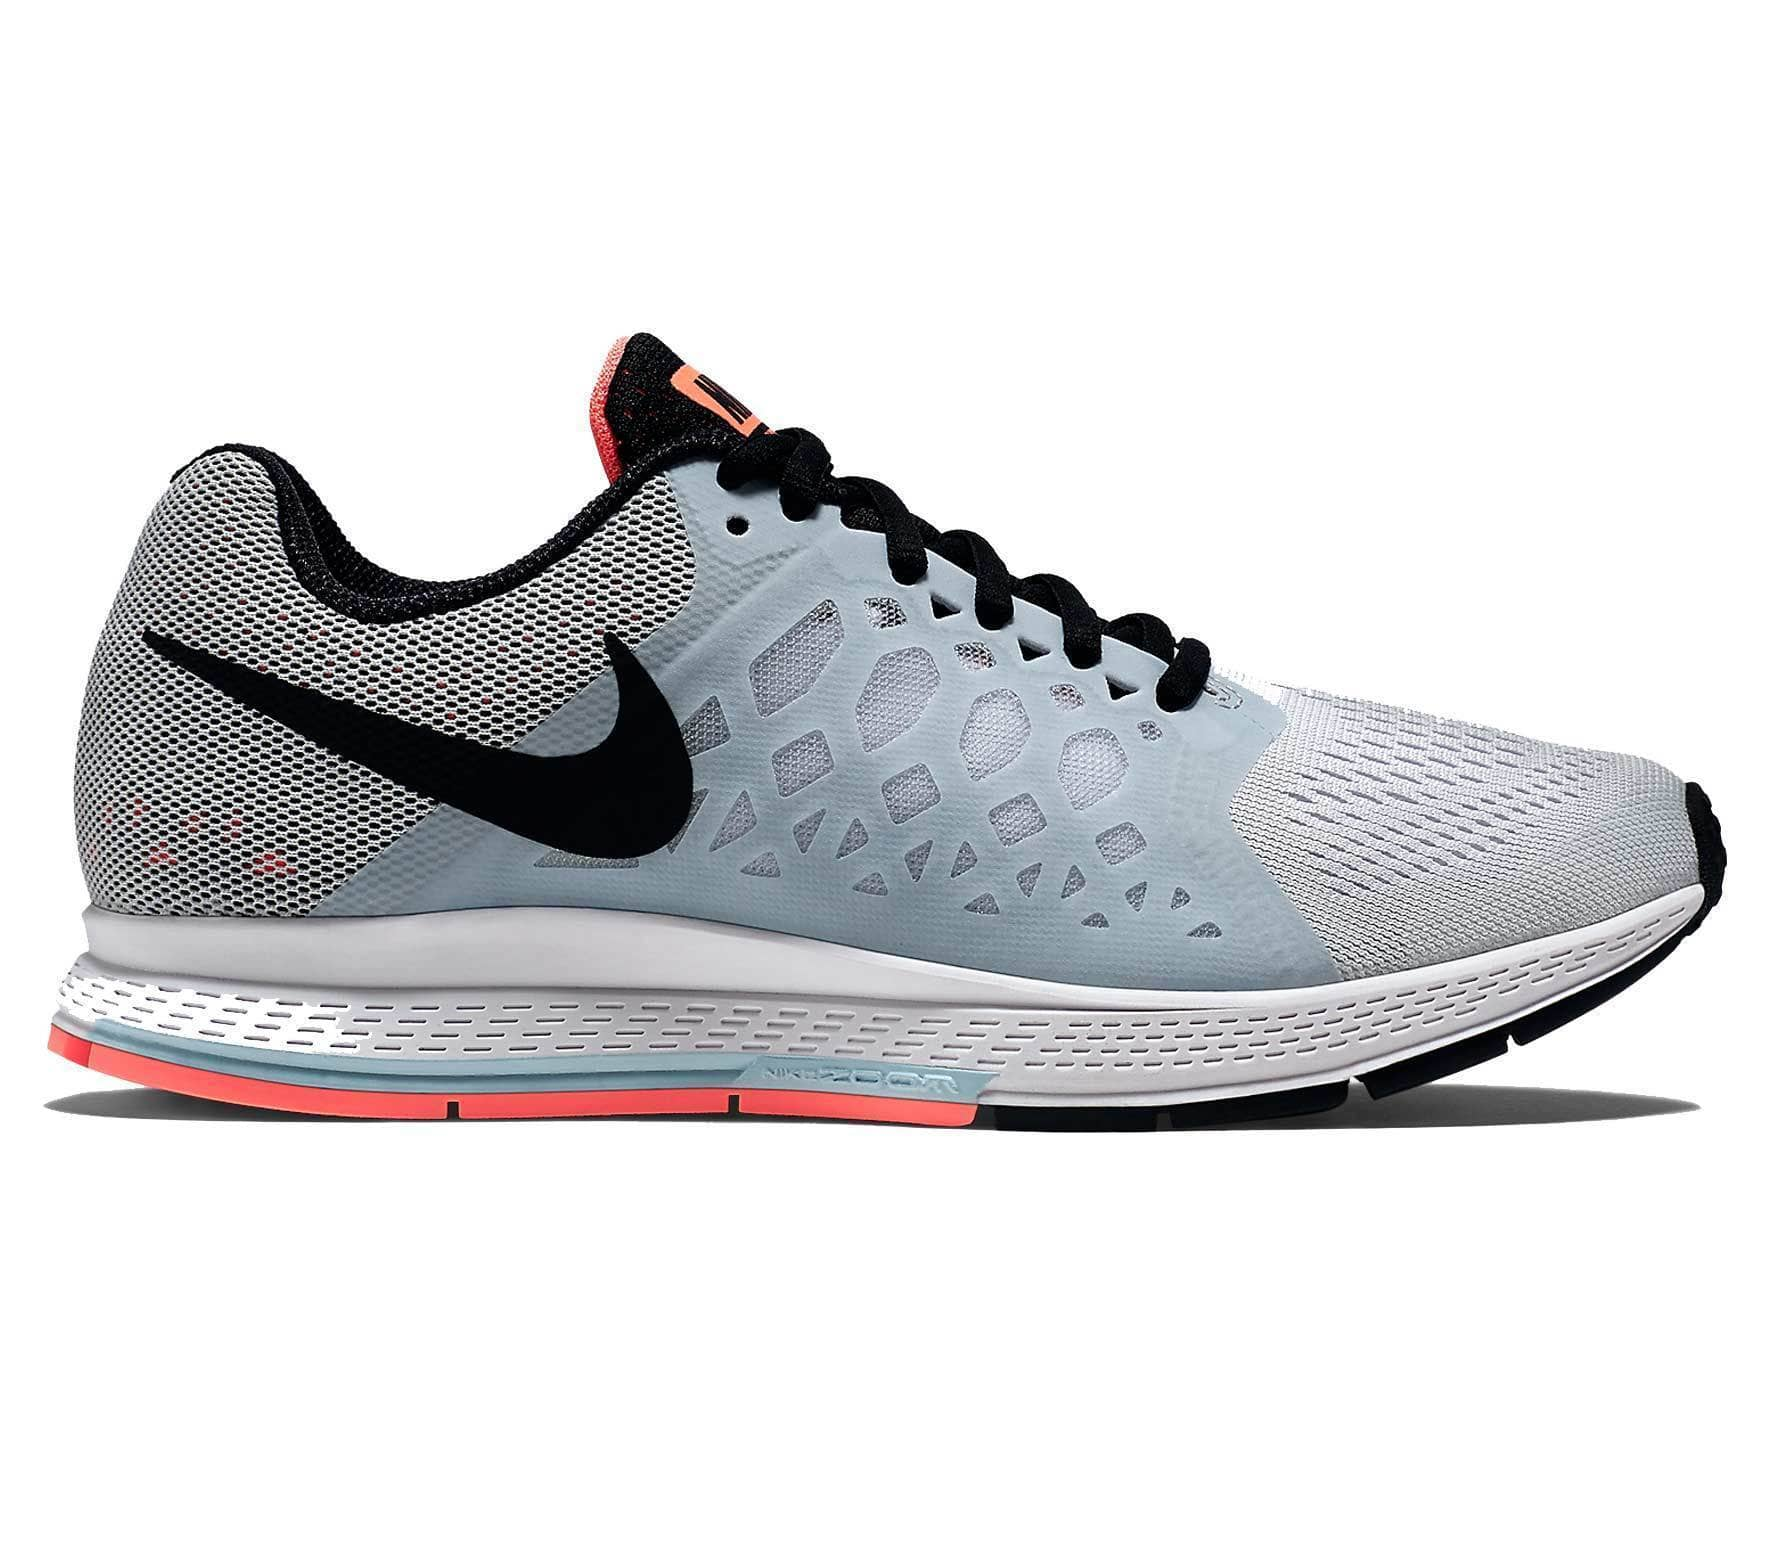 e245a746677d Nike - Air Zoom Pegasus 31 women s running shoes (grey black) - buy ...